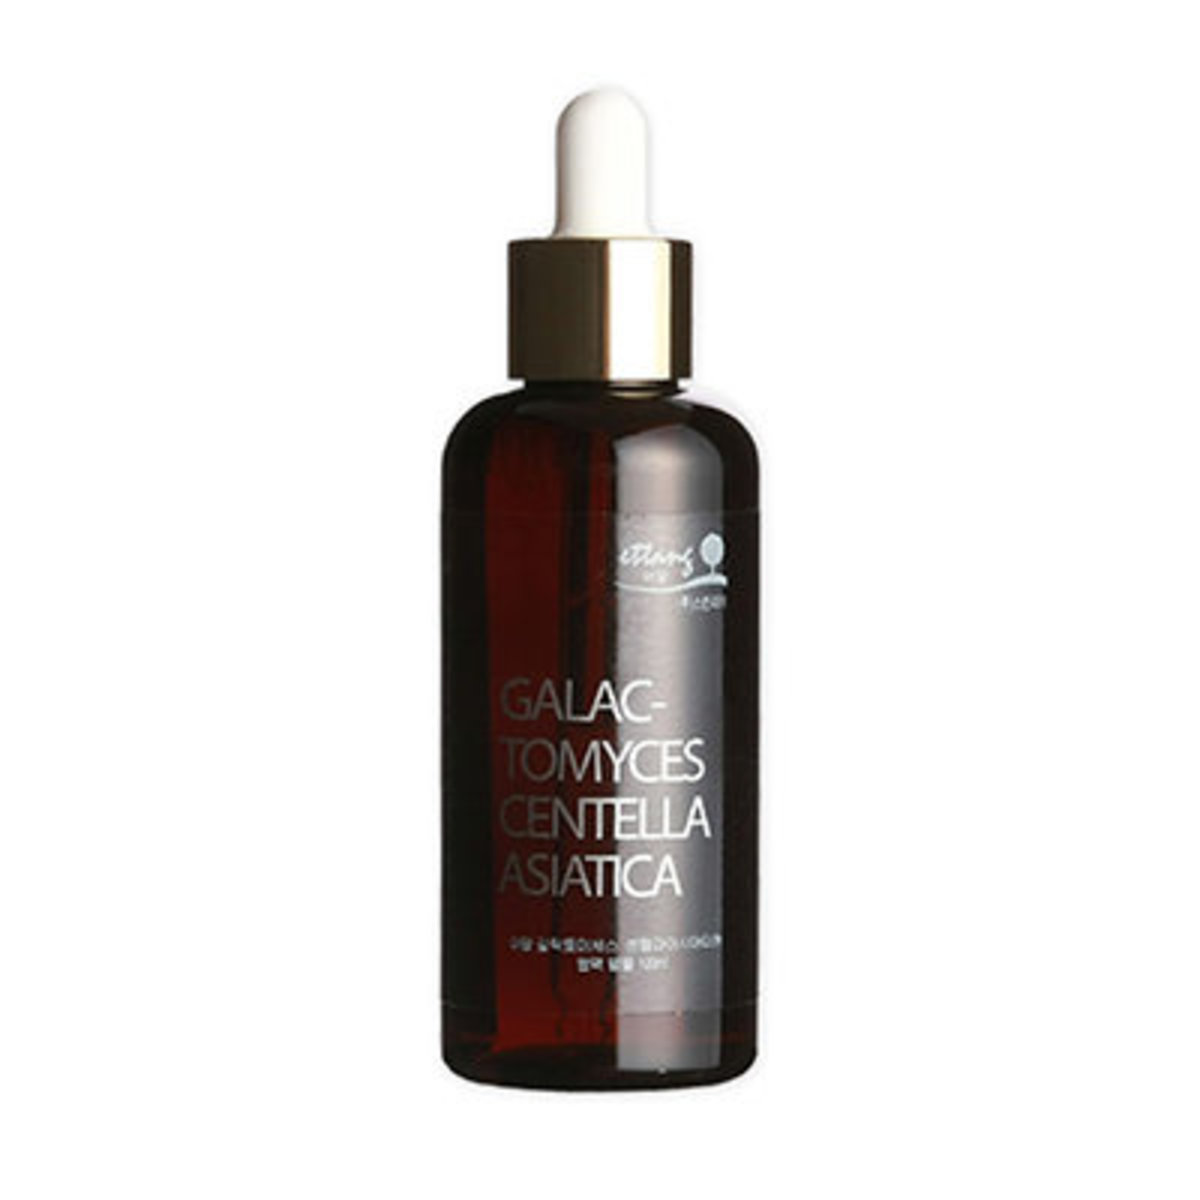 GALACTOMYCES CENTELLA ASIATICA UNDILUTED SOLUTION AMPOULE 100ML